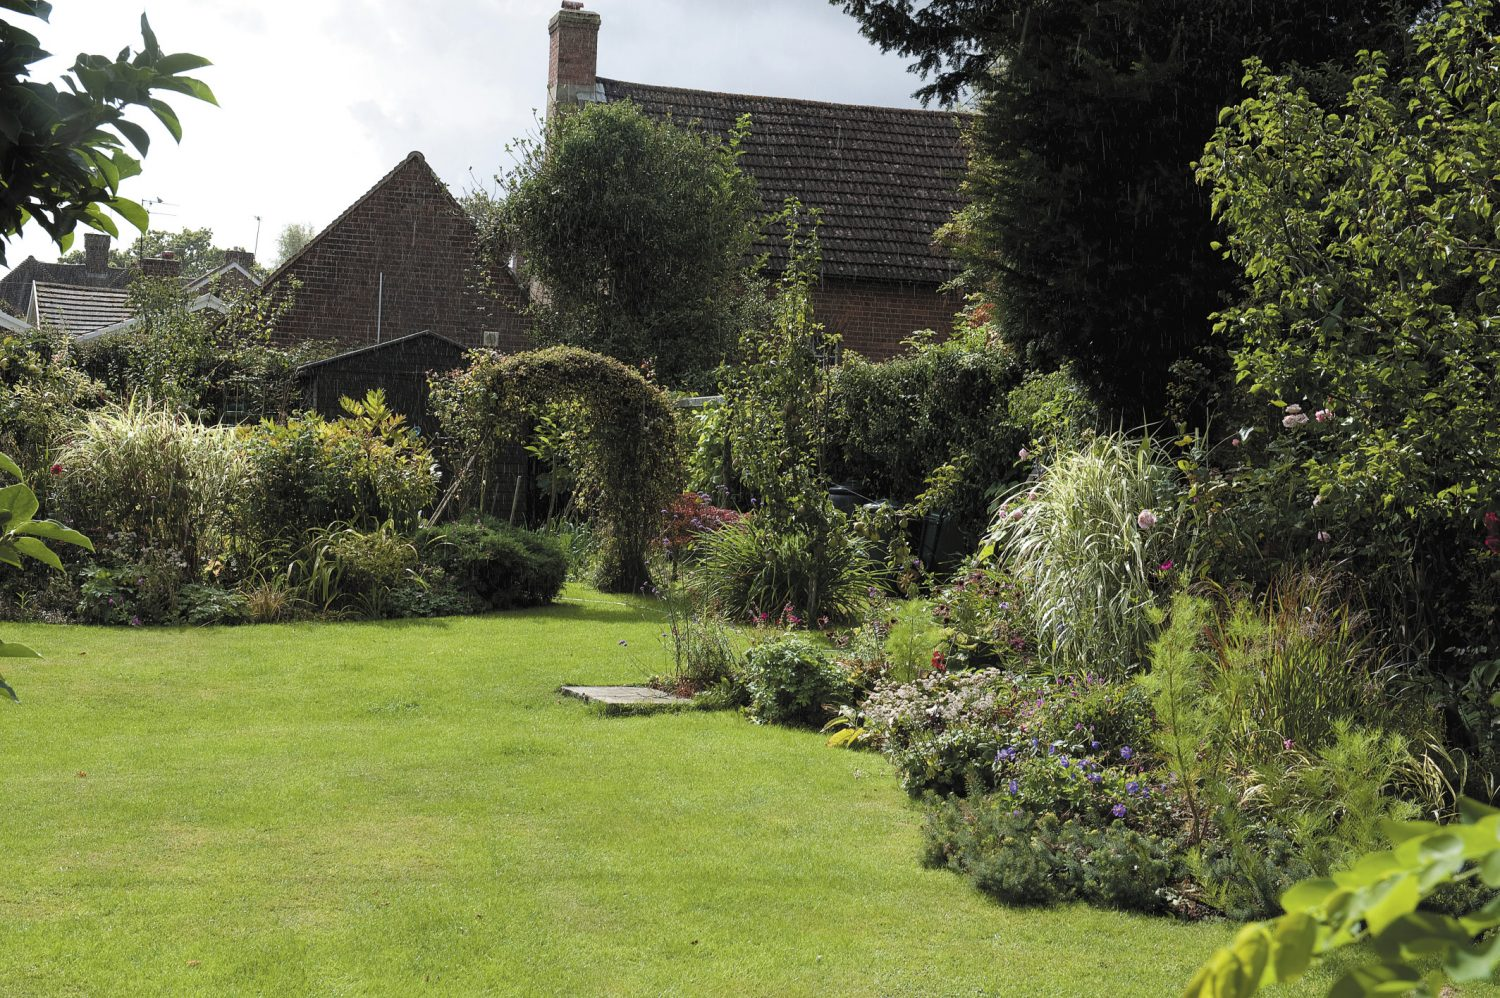 both Fanny and Vivian enjoy sharing the gardening which is a labour of love; the roof of the old schoolhouse can be seen at the end of the garden